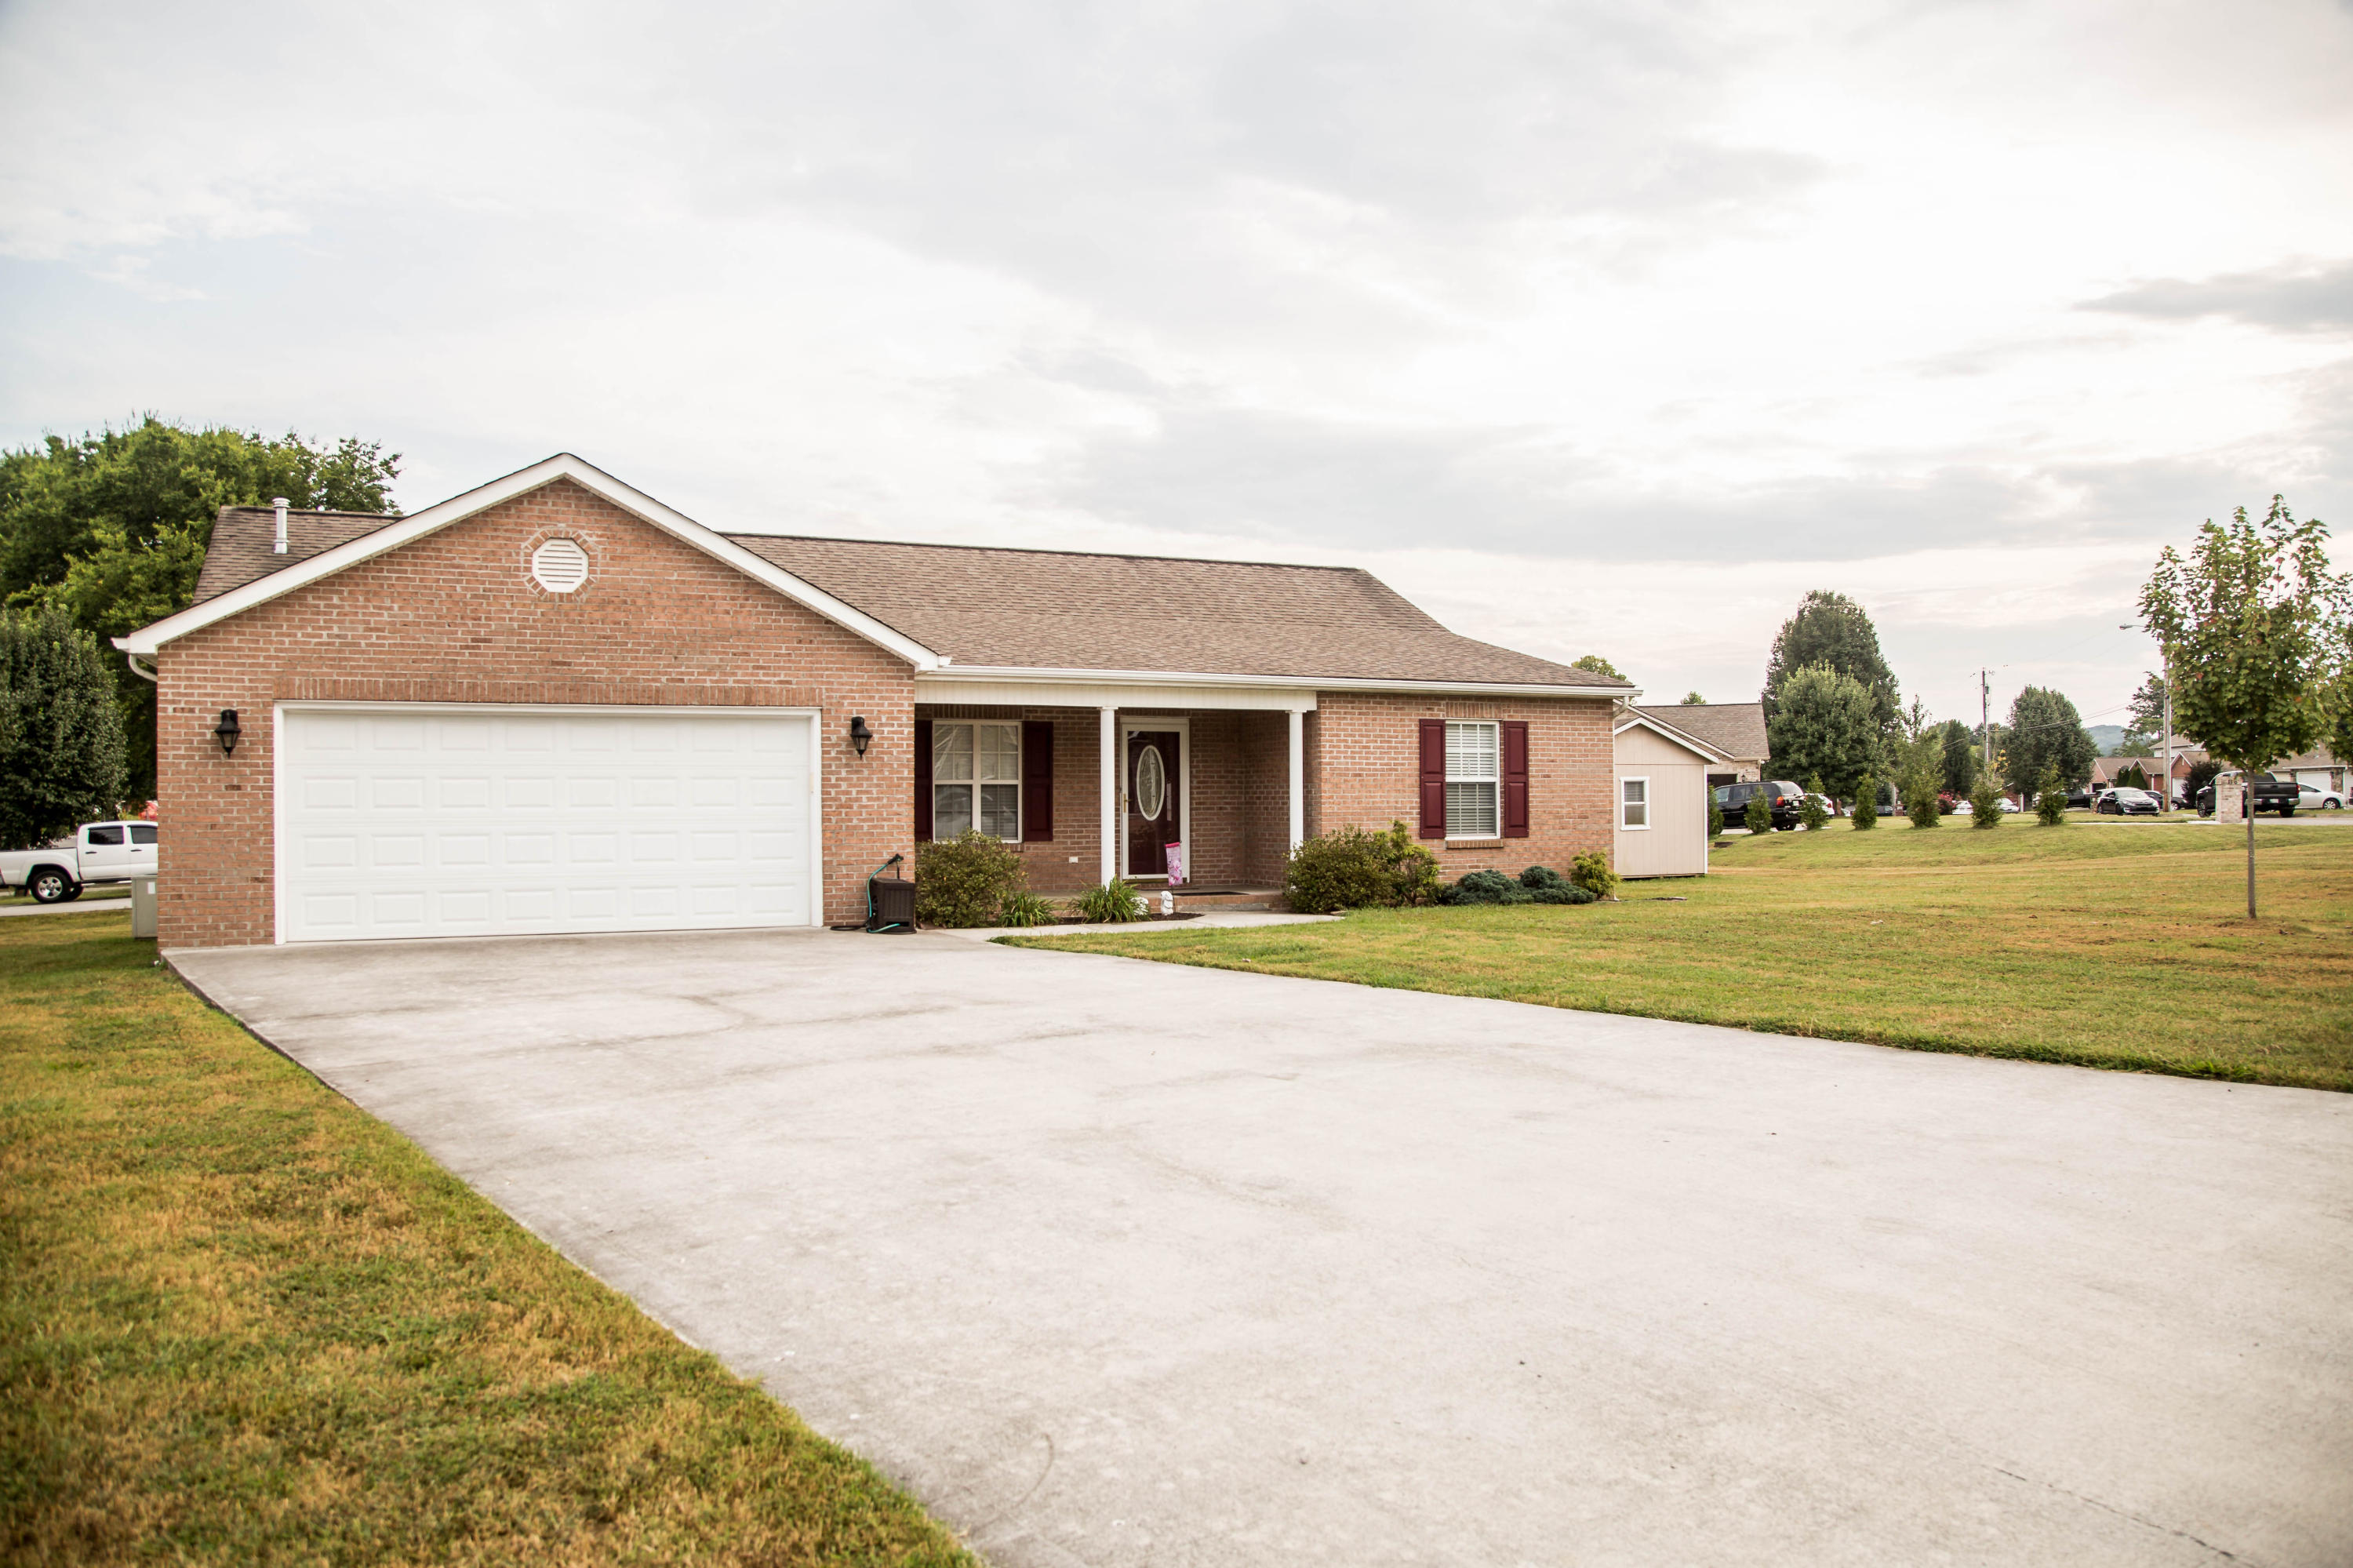 20190906160920805279000000-o Clinton anderson county homes for sale